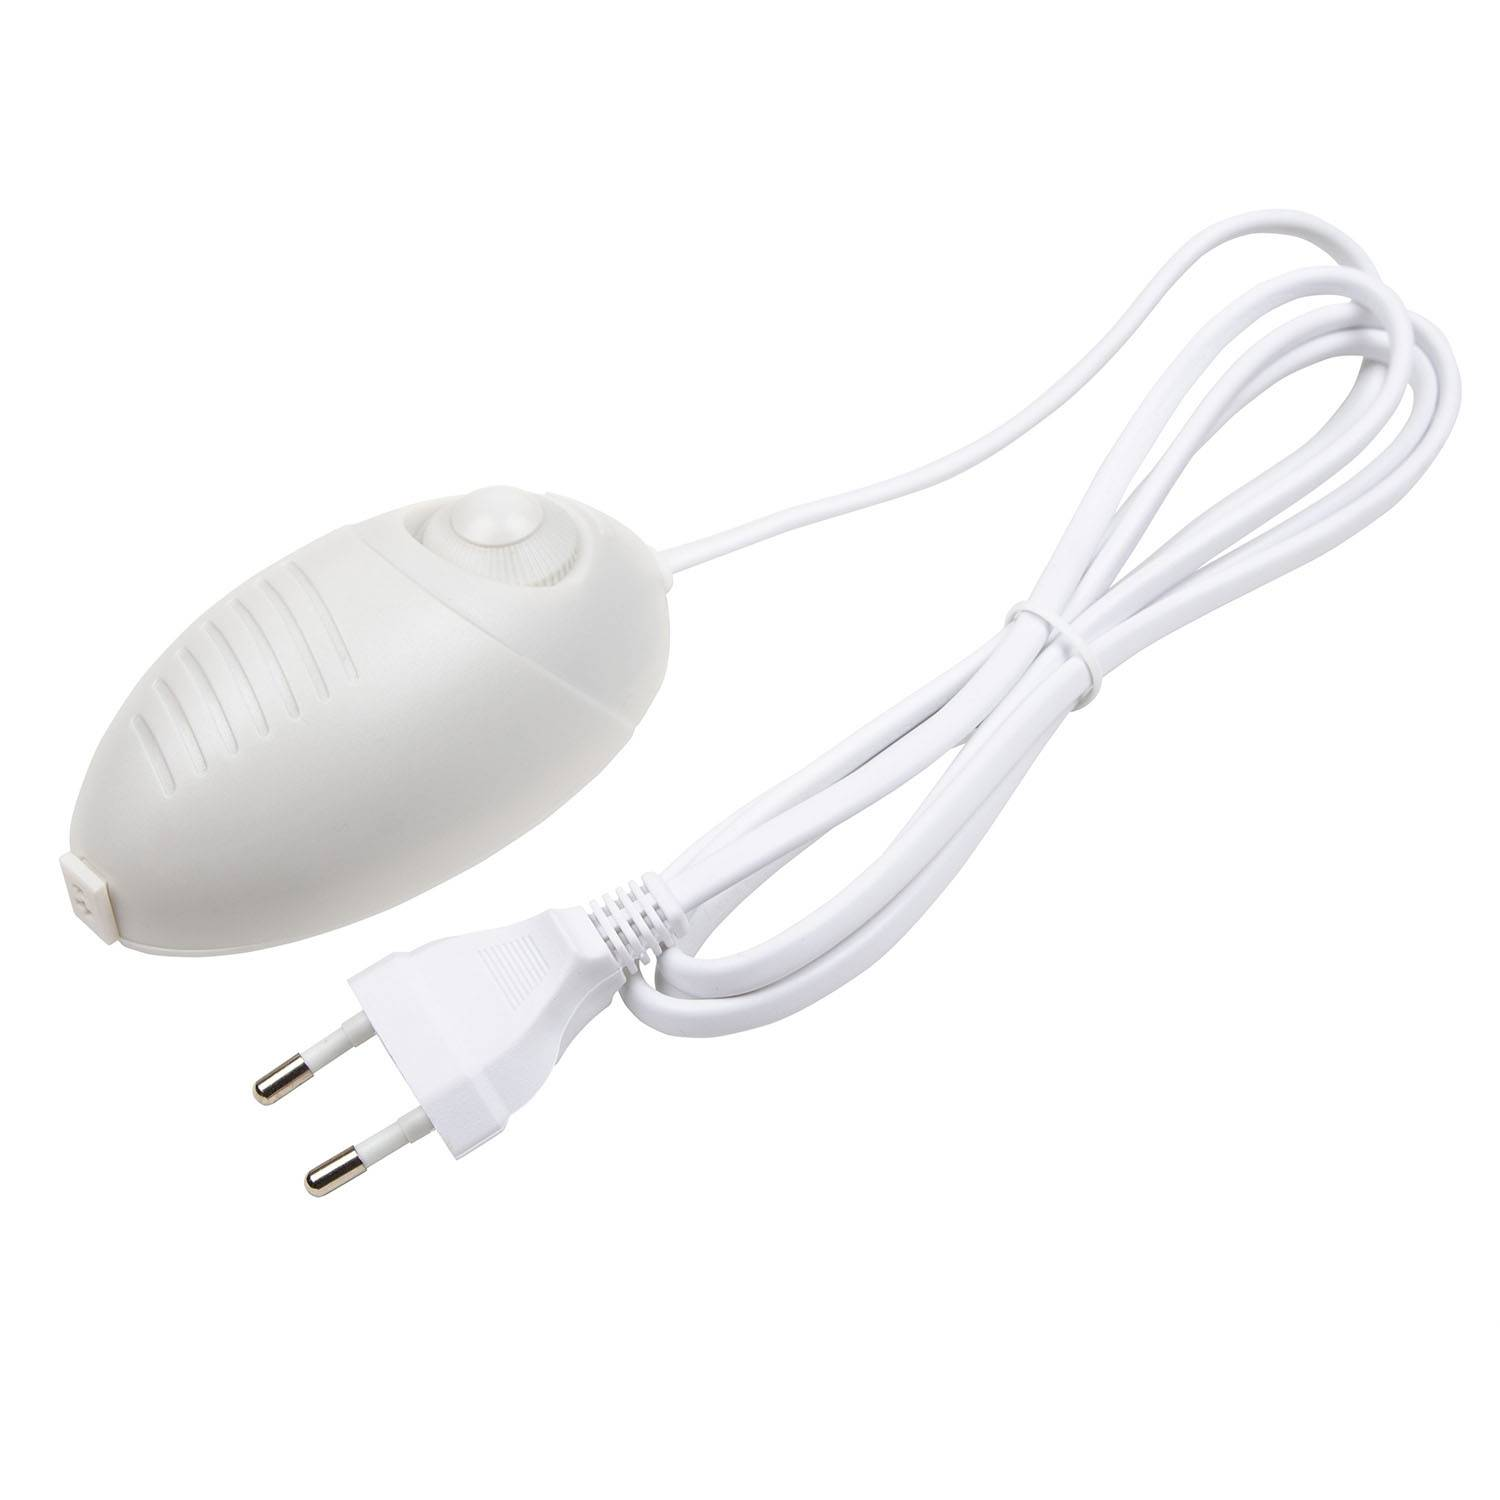 Smak Design -Dimmer/Transformer 10-60W Ink Cord Your-Plug in, White